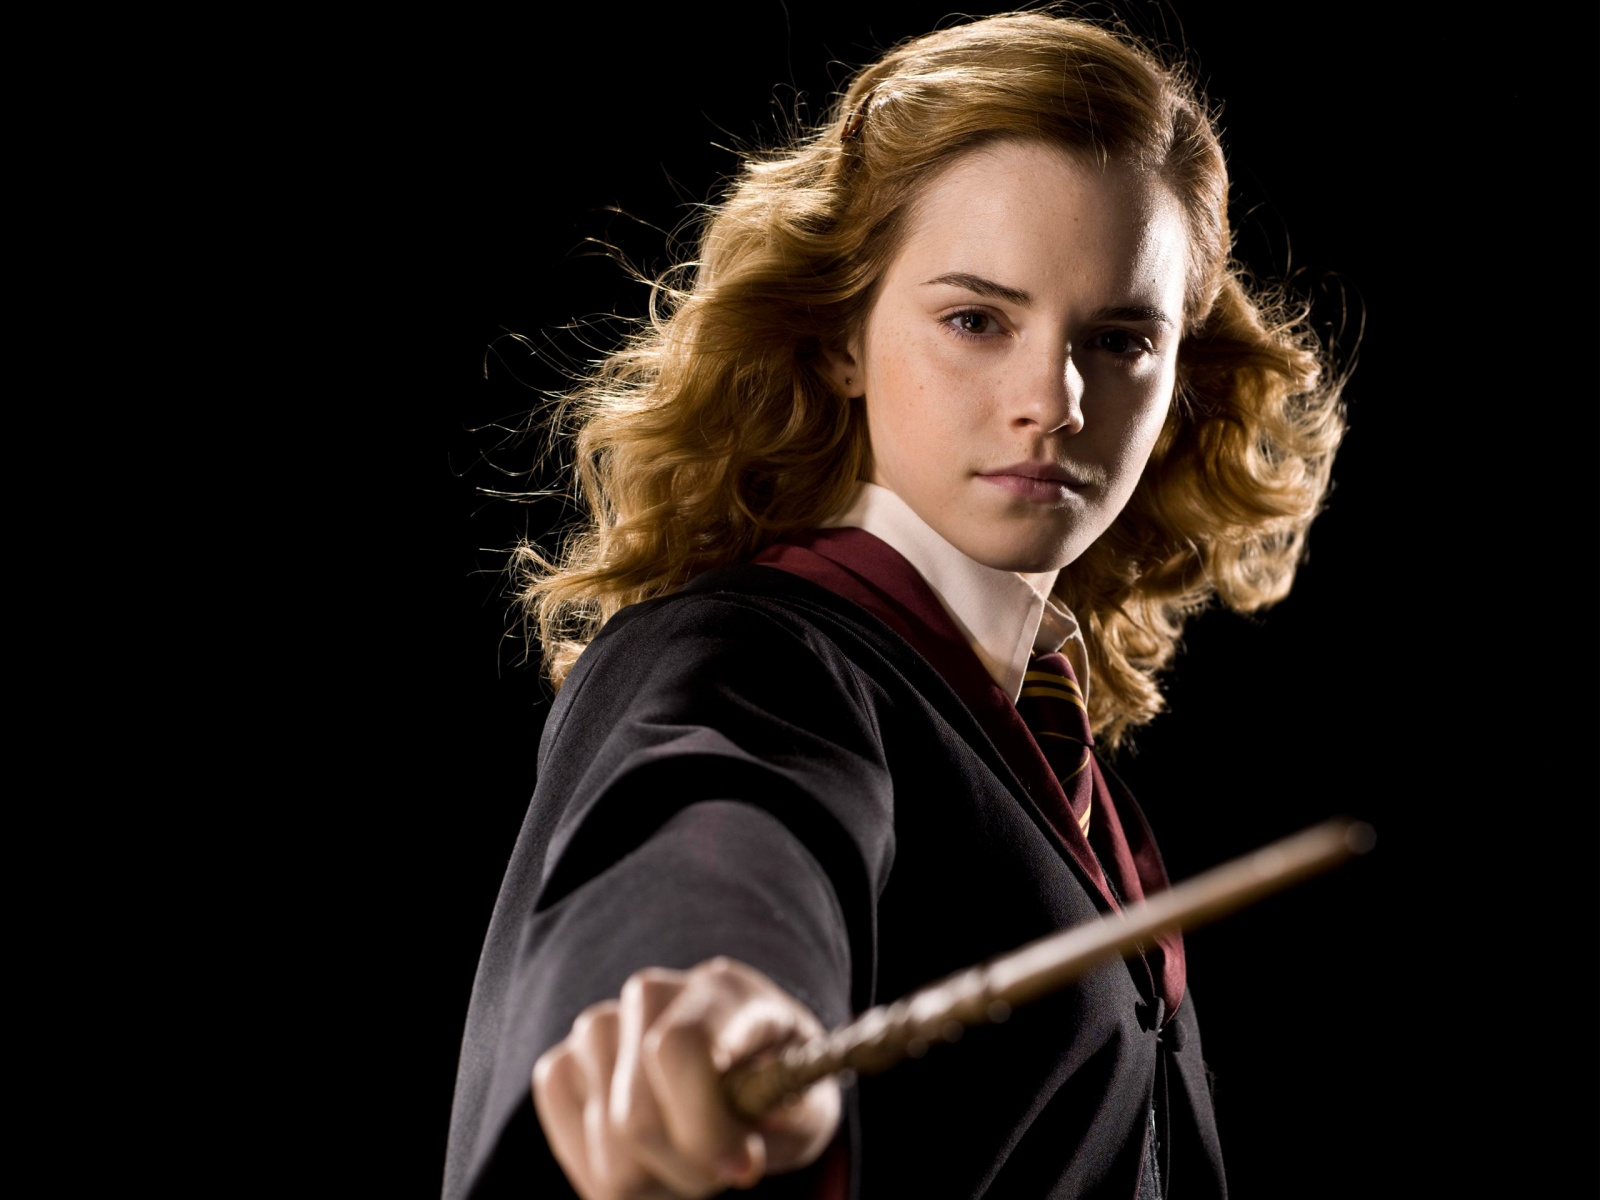 Emma Watson In Harry Potter 4 Wallpapers In Jpg Format For Free Download